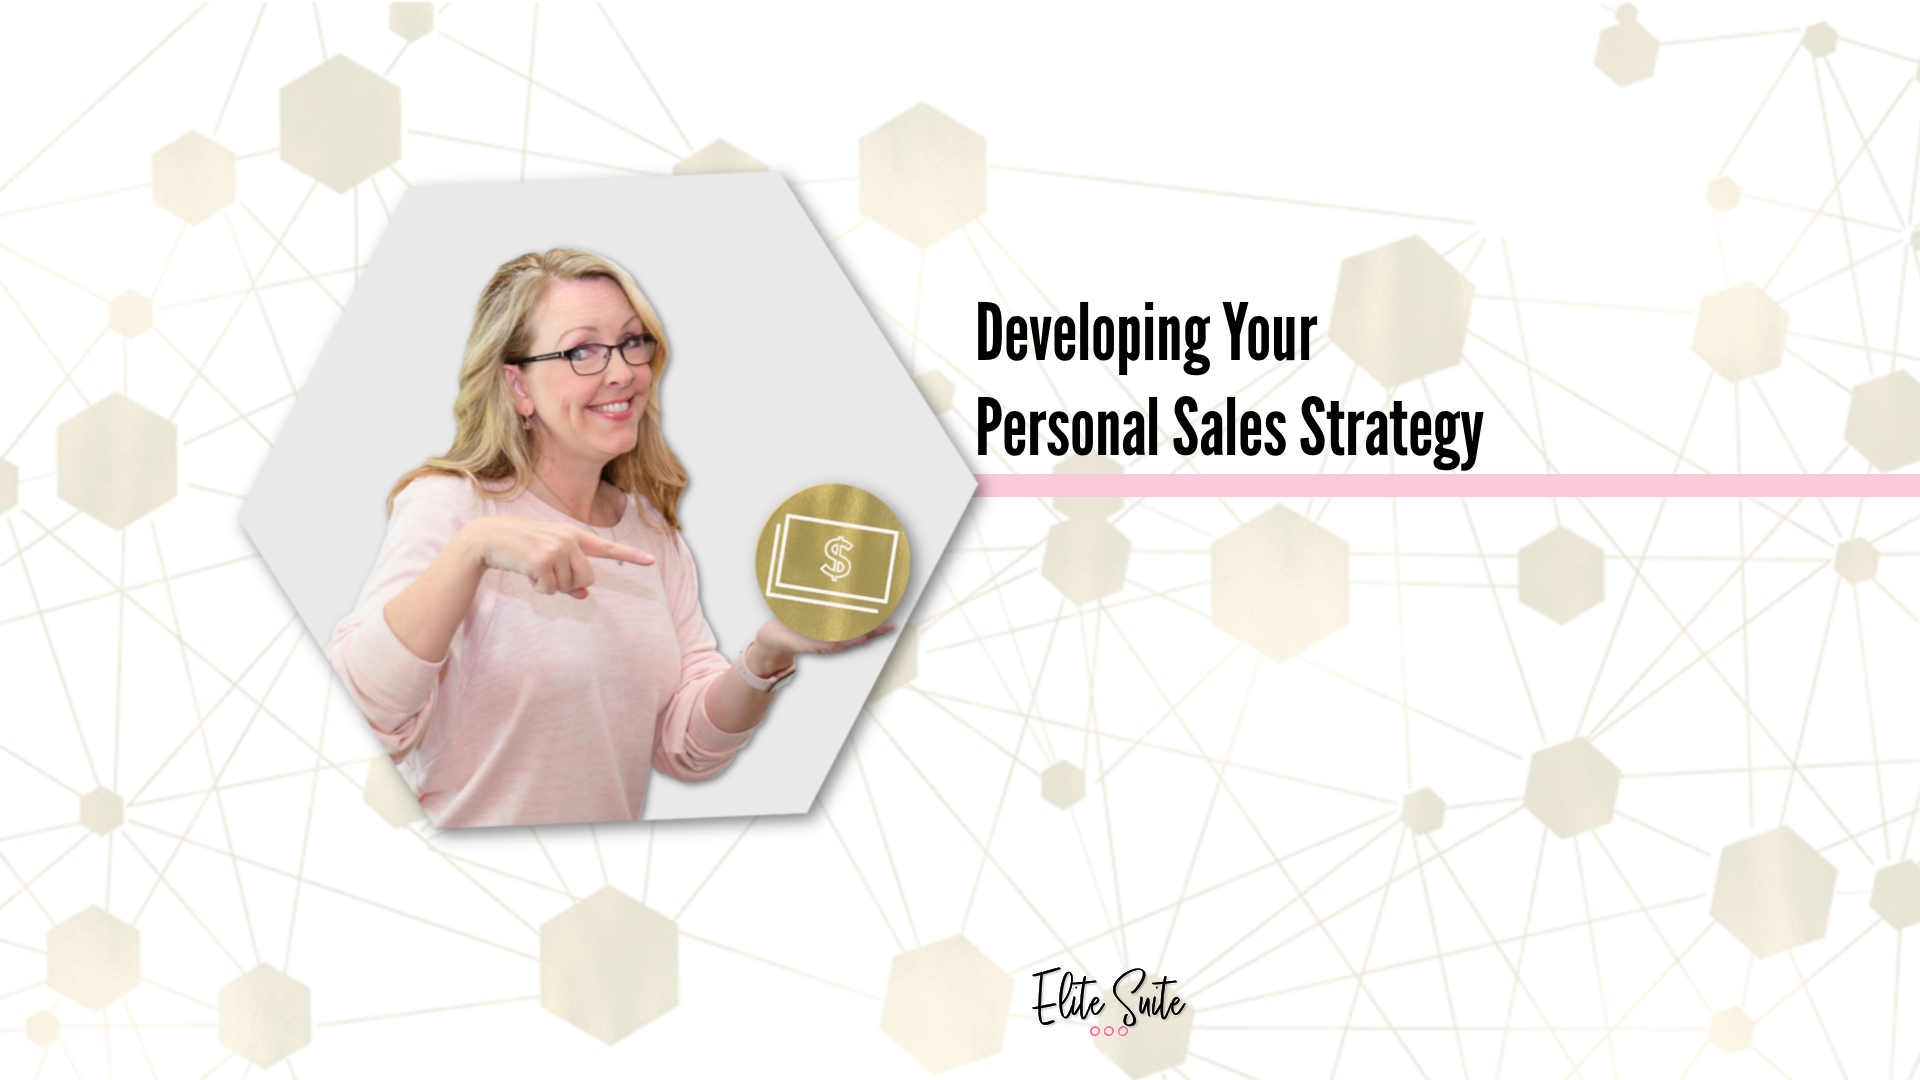 Developing Your Personal Sales Strategy Masterclass title overlay